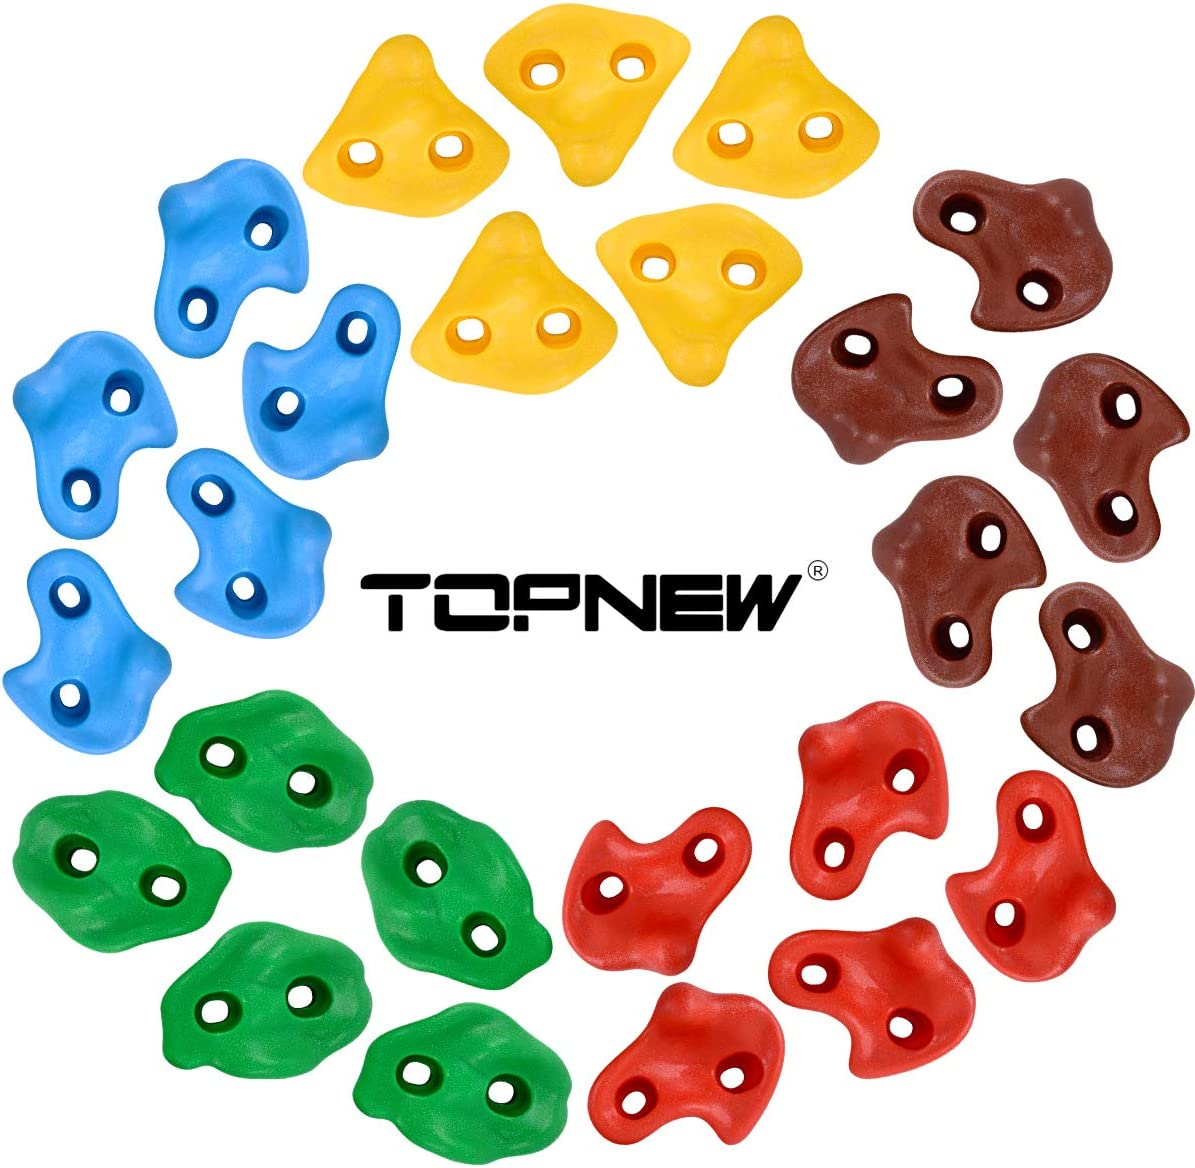 TOPNEW 25 Rock Climbing Holds for Kids and Adults, Large Rock Wall Grips for Indoor and Outdoor Play Set - Build Rock Climbing Wall with 2 Inch Mounting Hardware: Toys & Games